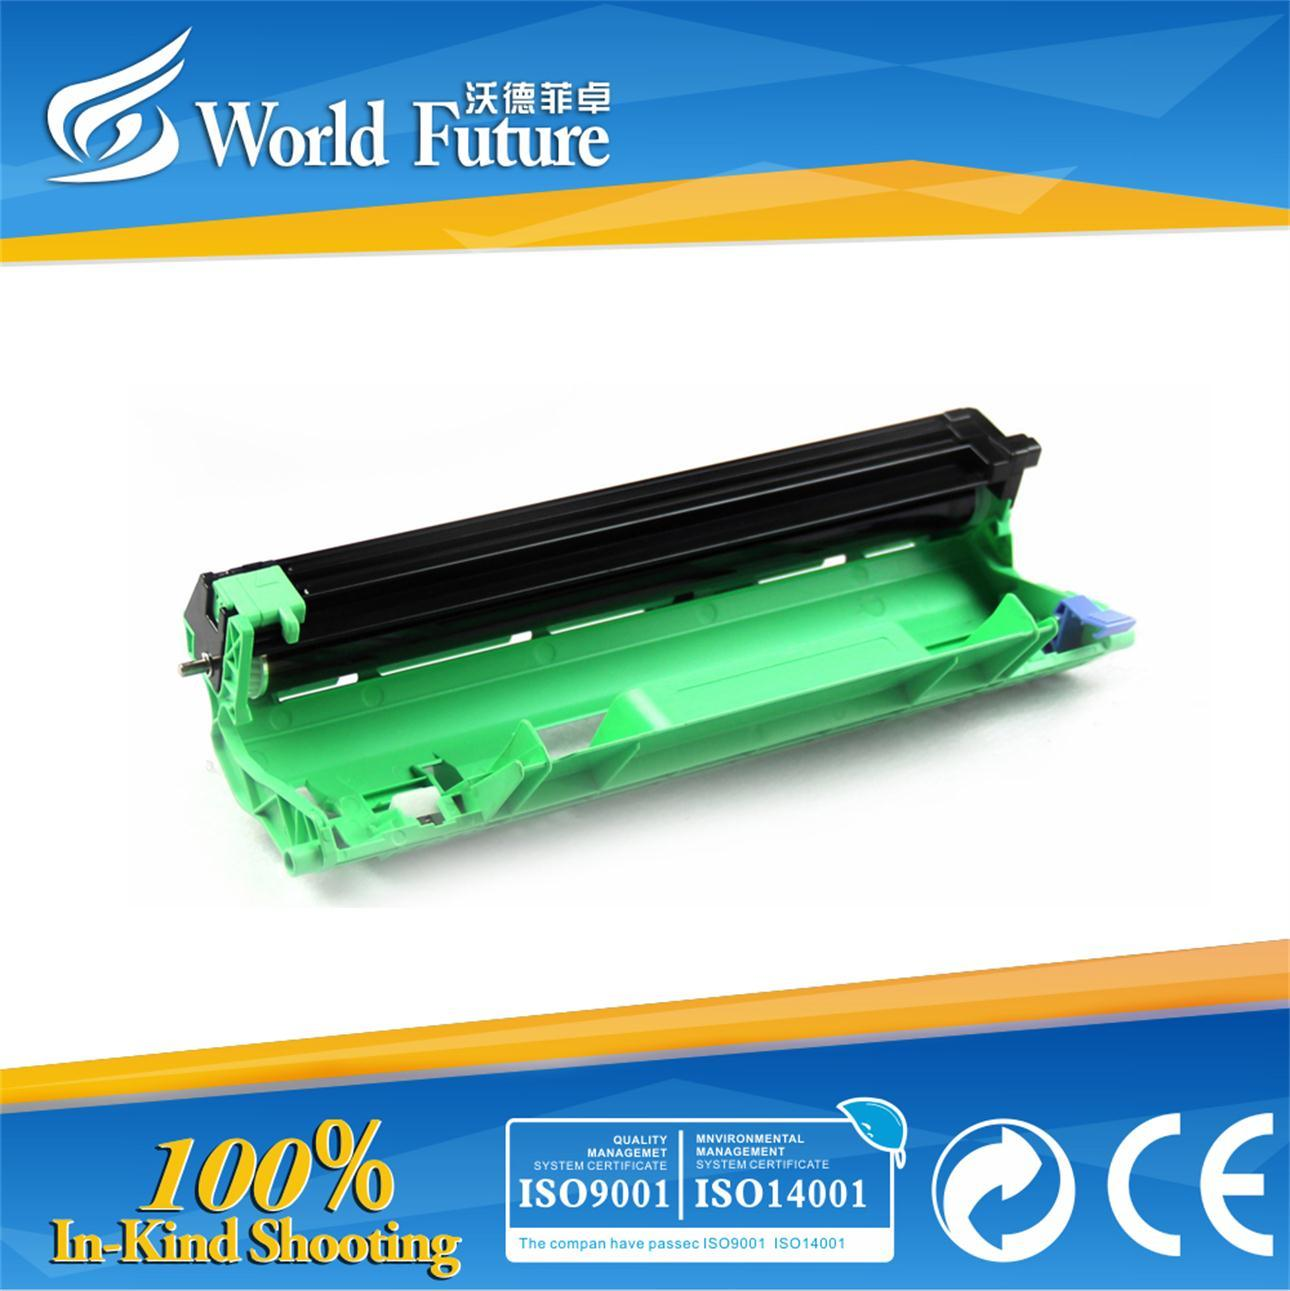 Dr1000/1020/1070/1040 Drum Unit for Use in Hl-1110/1111/1112/1118